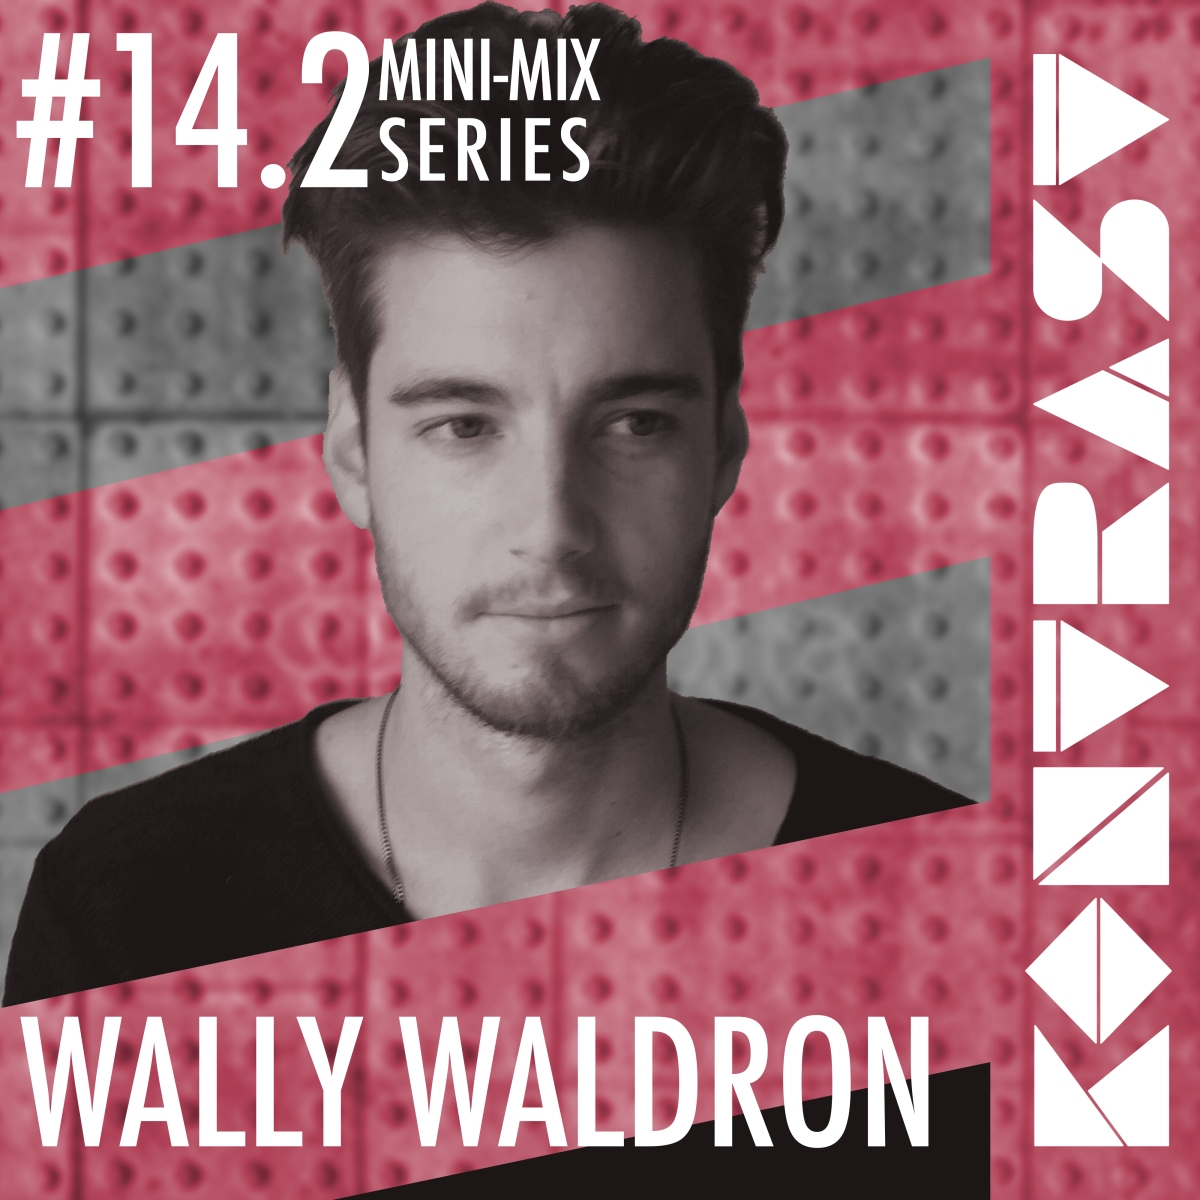 KONTRAST MINI-MIX #14.2 – WALLY WALDRON